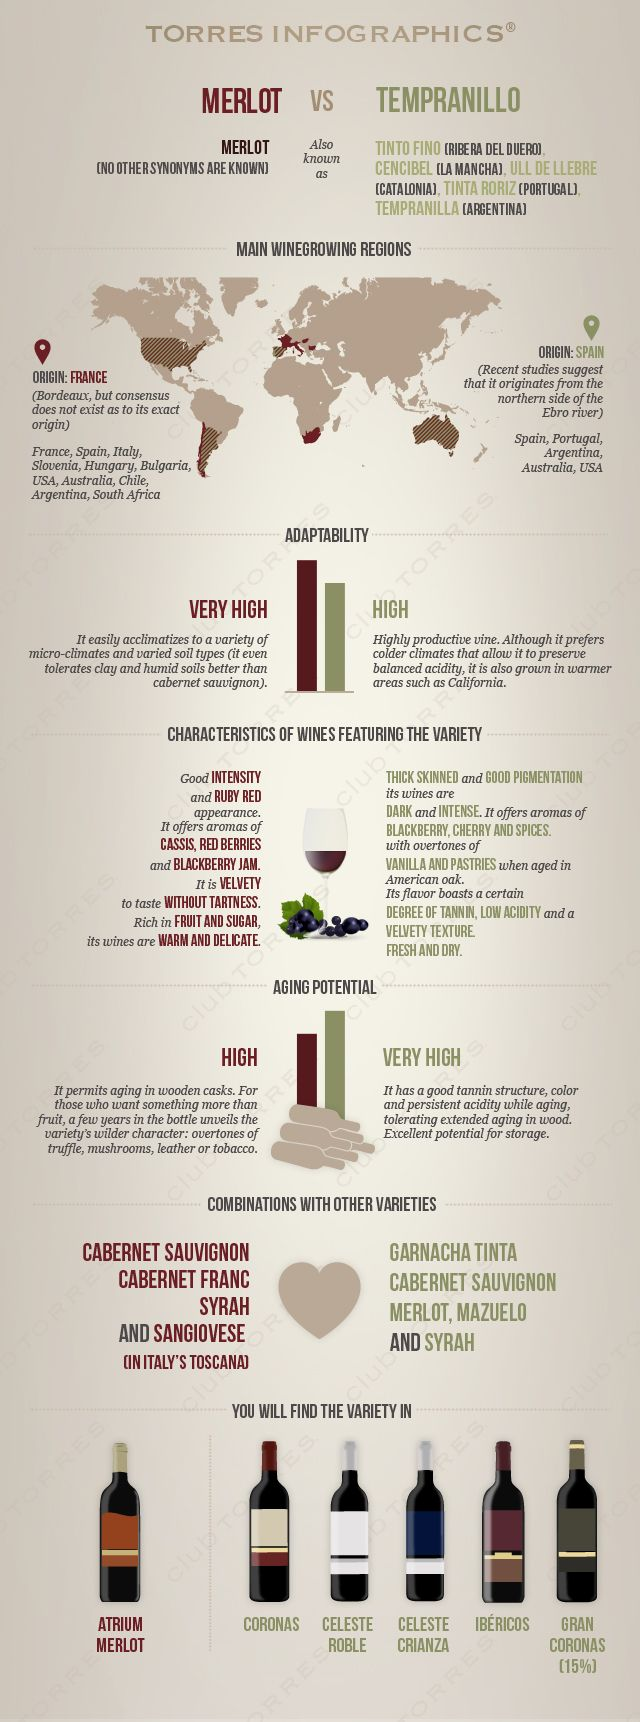 #Infography: Merlot Vs Tempranillo. #Wine